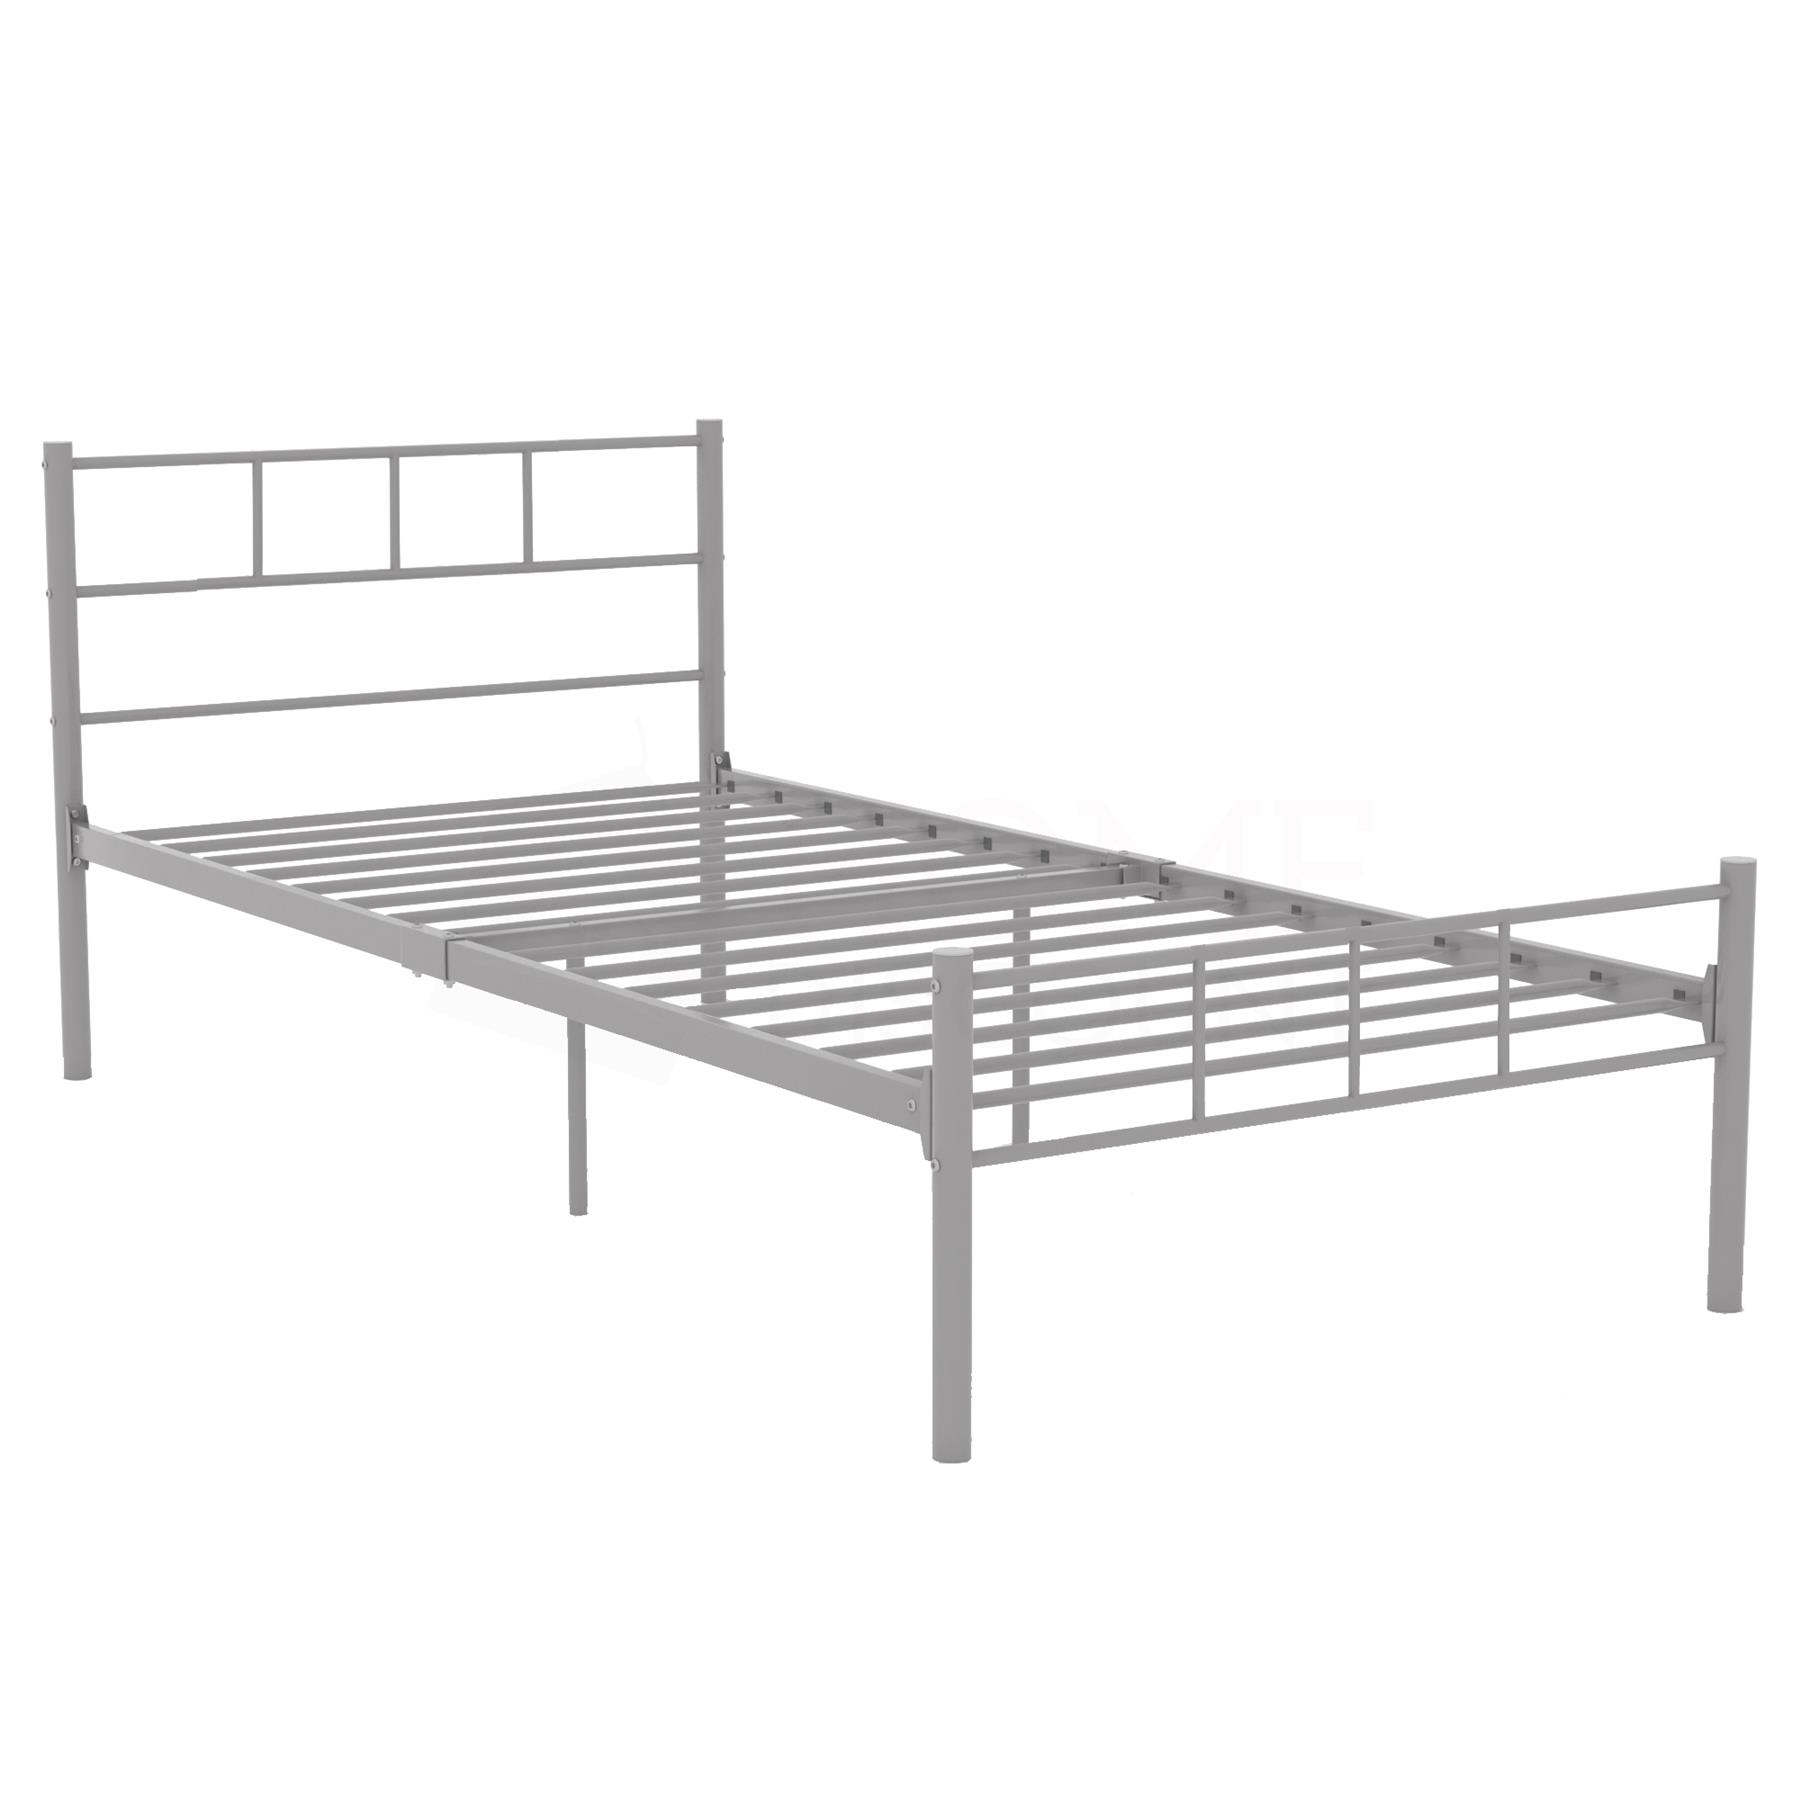 Dorset-Double-King-Size-Single-Bed-Metal-Steel-Frame-4ft6-5ft-Bedroom-Furniture thumbnail 18